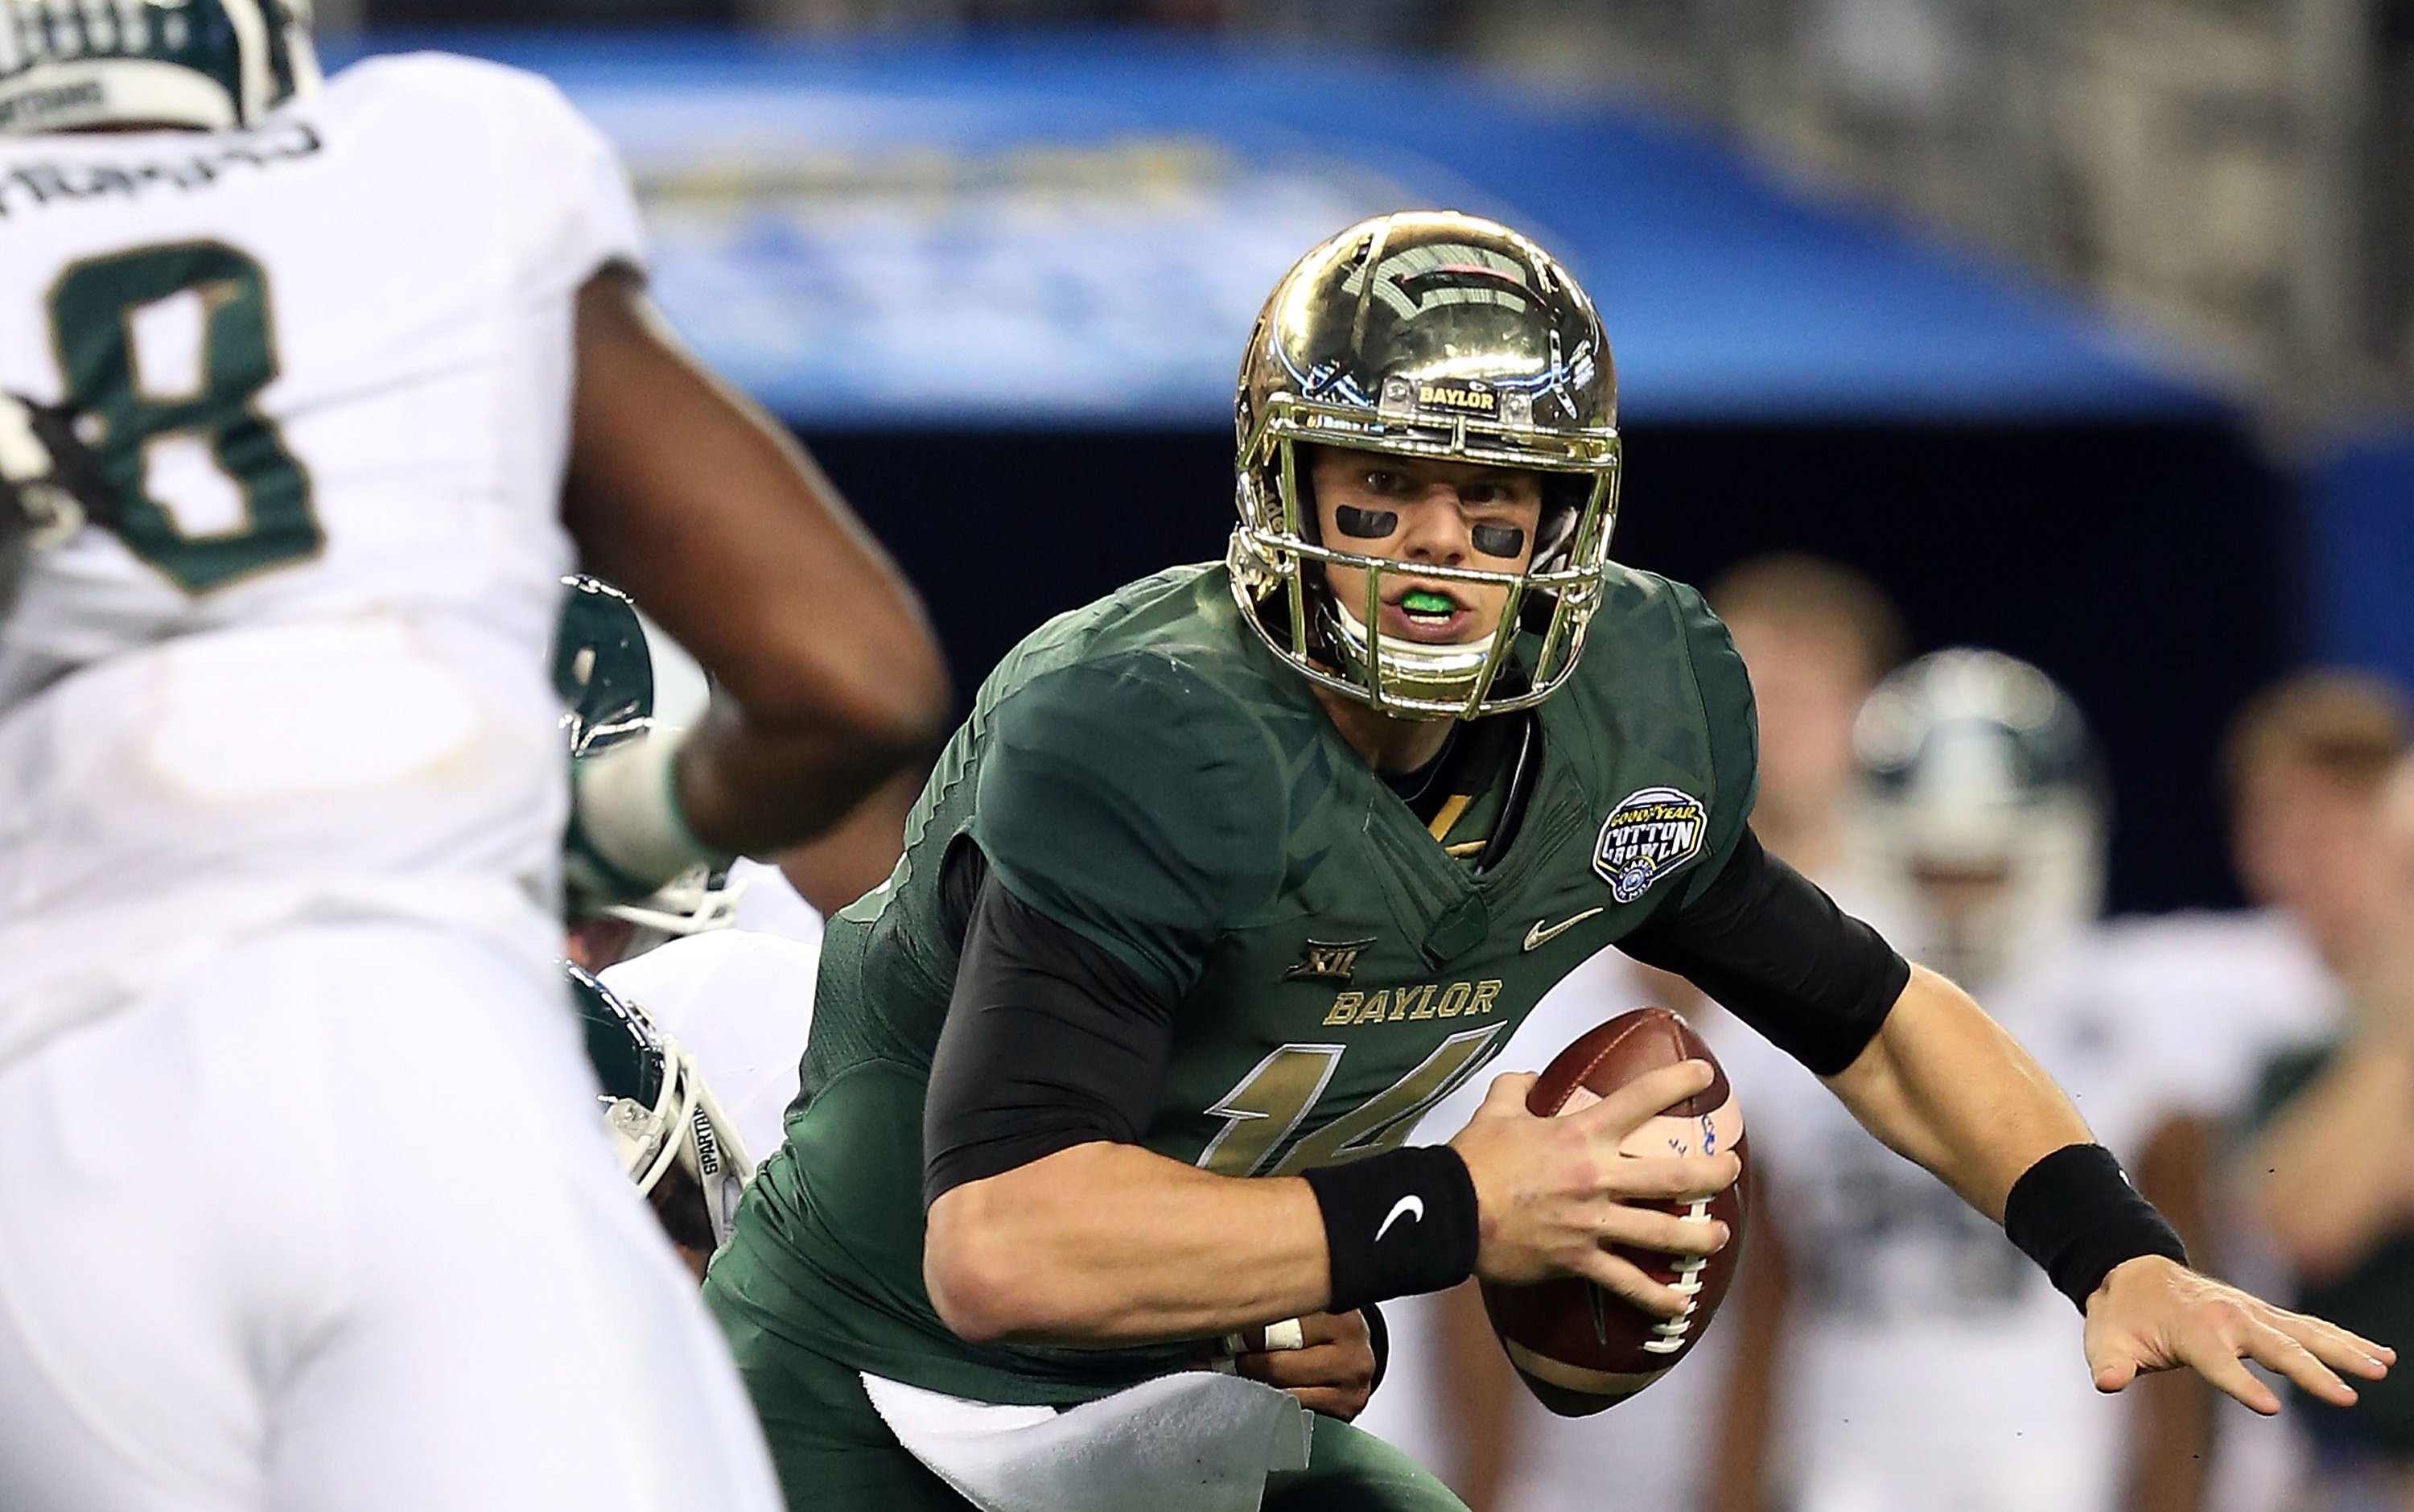 In a losing effort, Bryce Petty put on a show at the Cotton Bowl. (Getty Images)